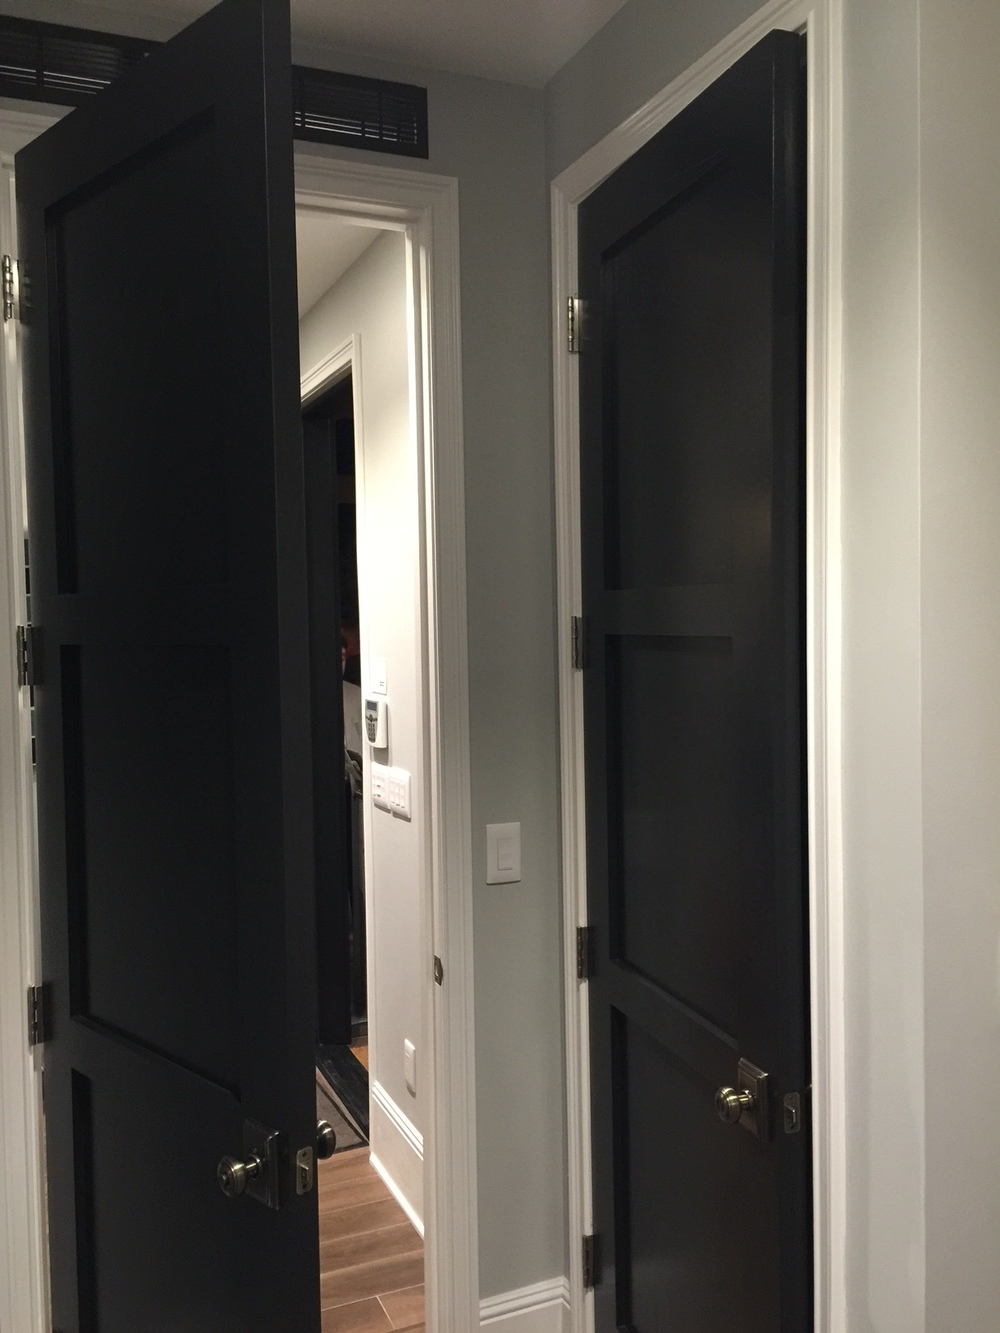 Suite | Black interior doors - Responsive Home | Interior Designer: Bobby Berk